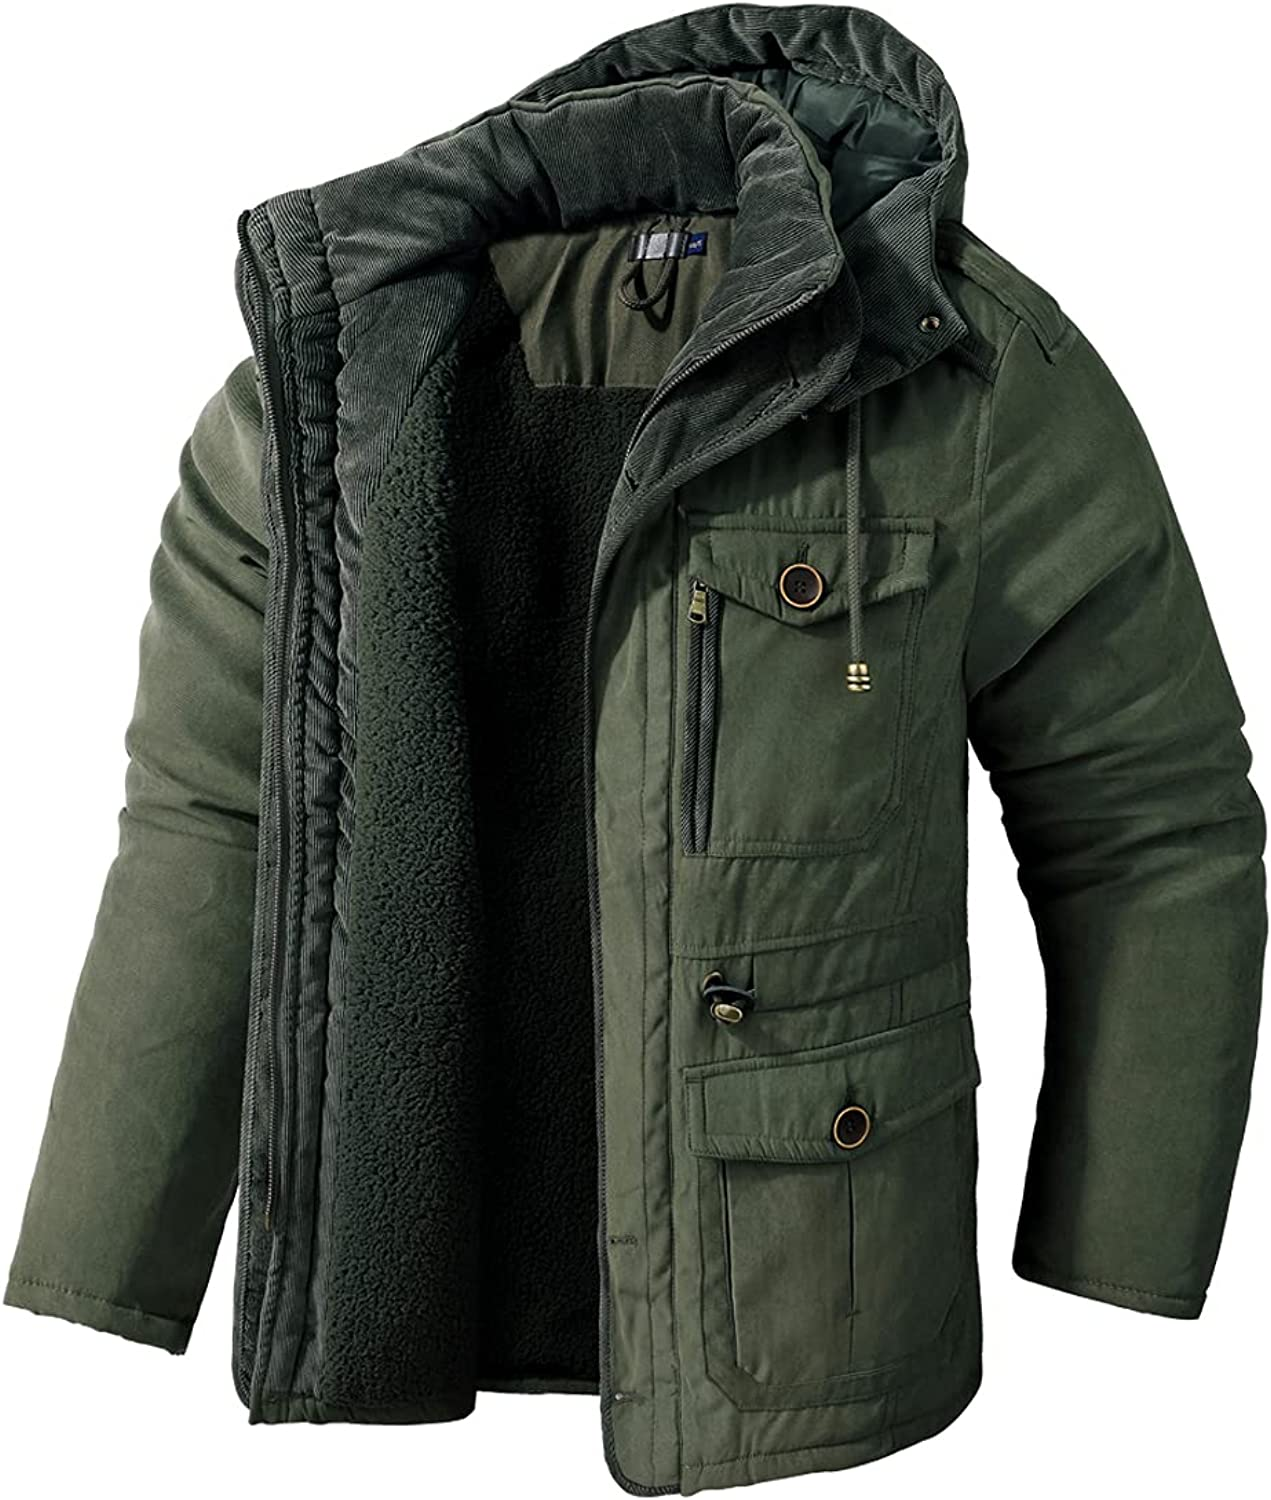 Mr.Stream Men's Winter Hooded Ranking TOP13 Jacket Lined Flee Windproof Challenge the lowest price of Japan Sherpa